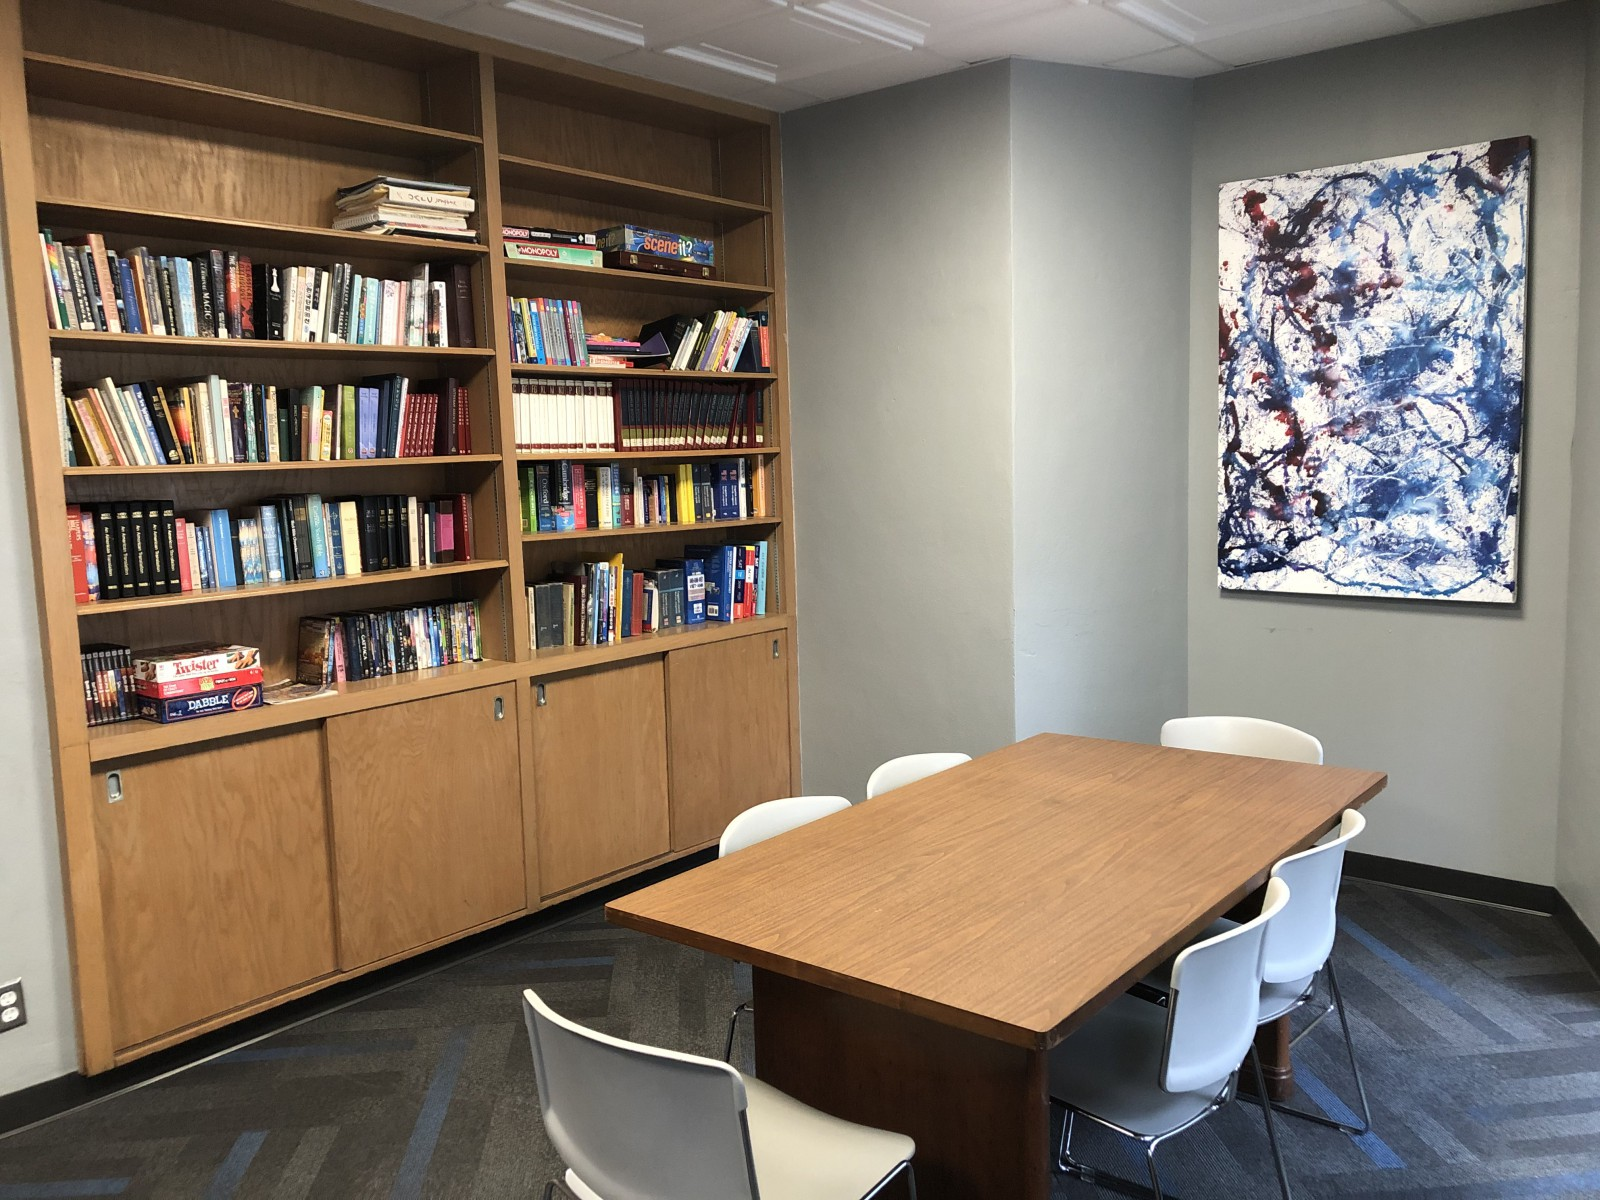 Moeller Study Area/Meeting Room